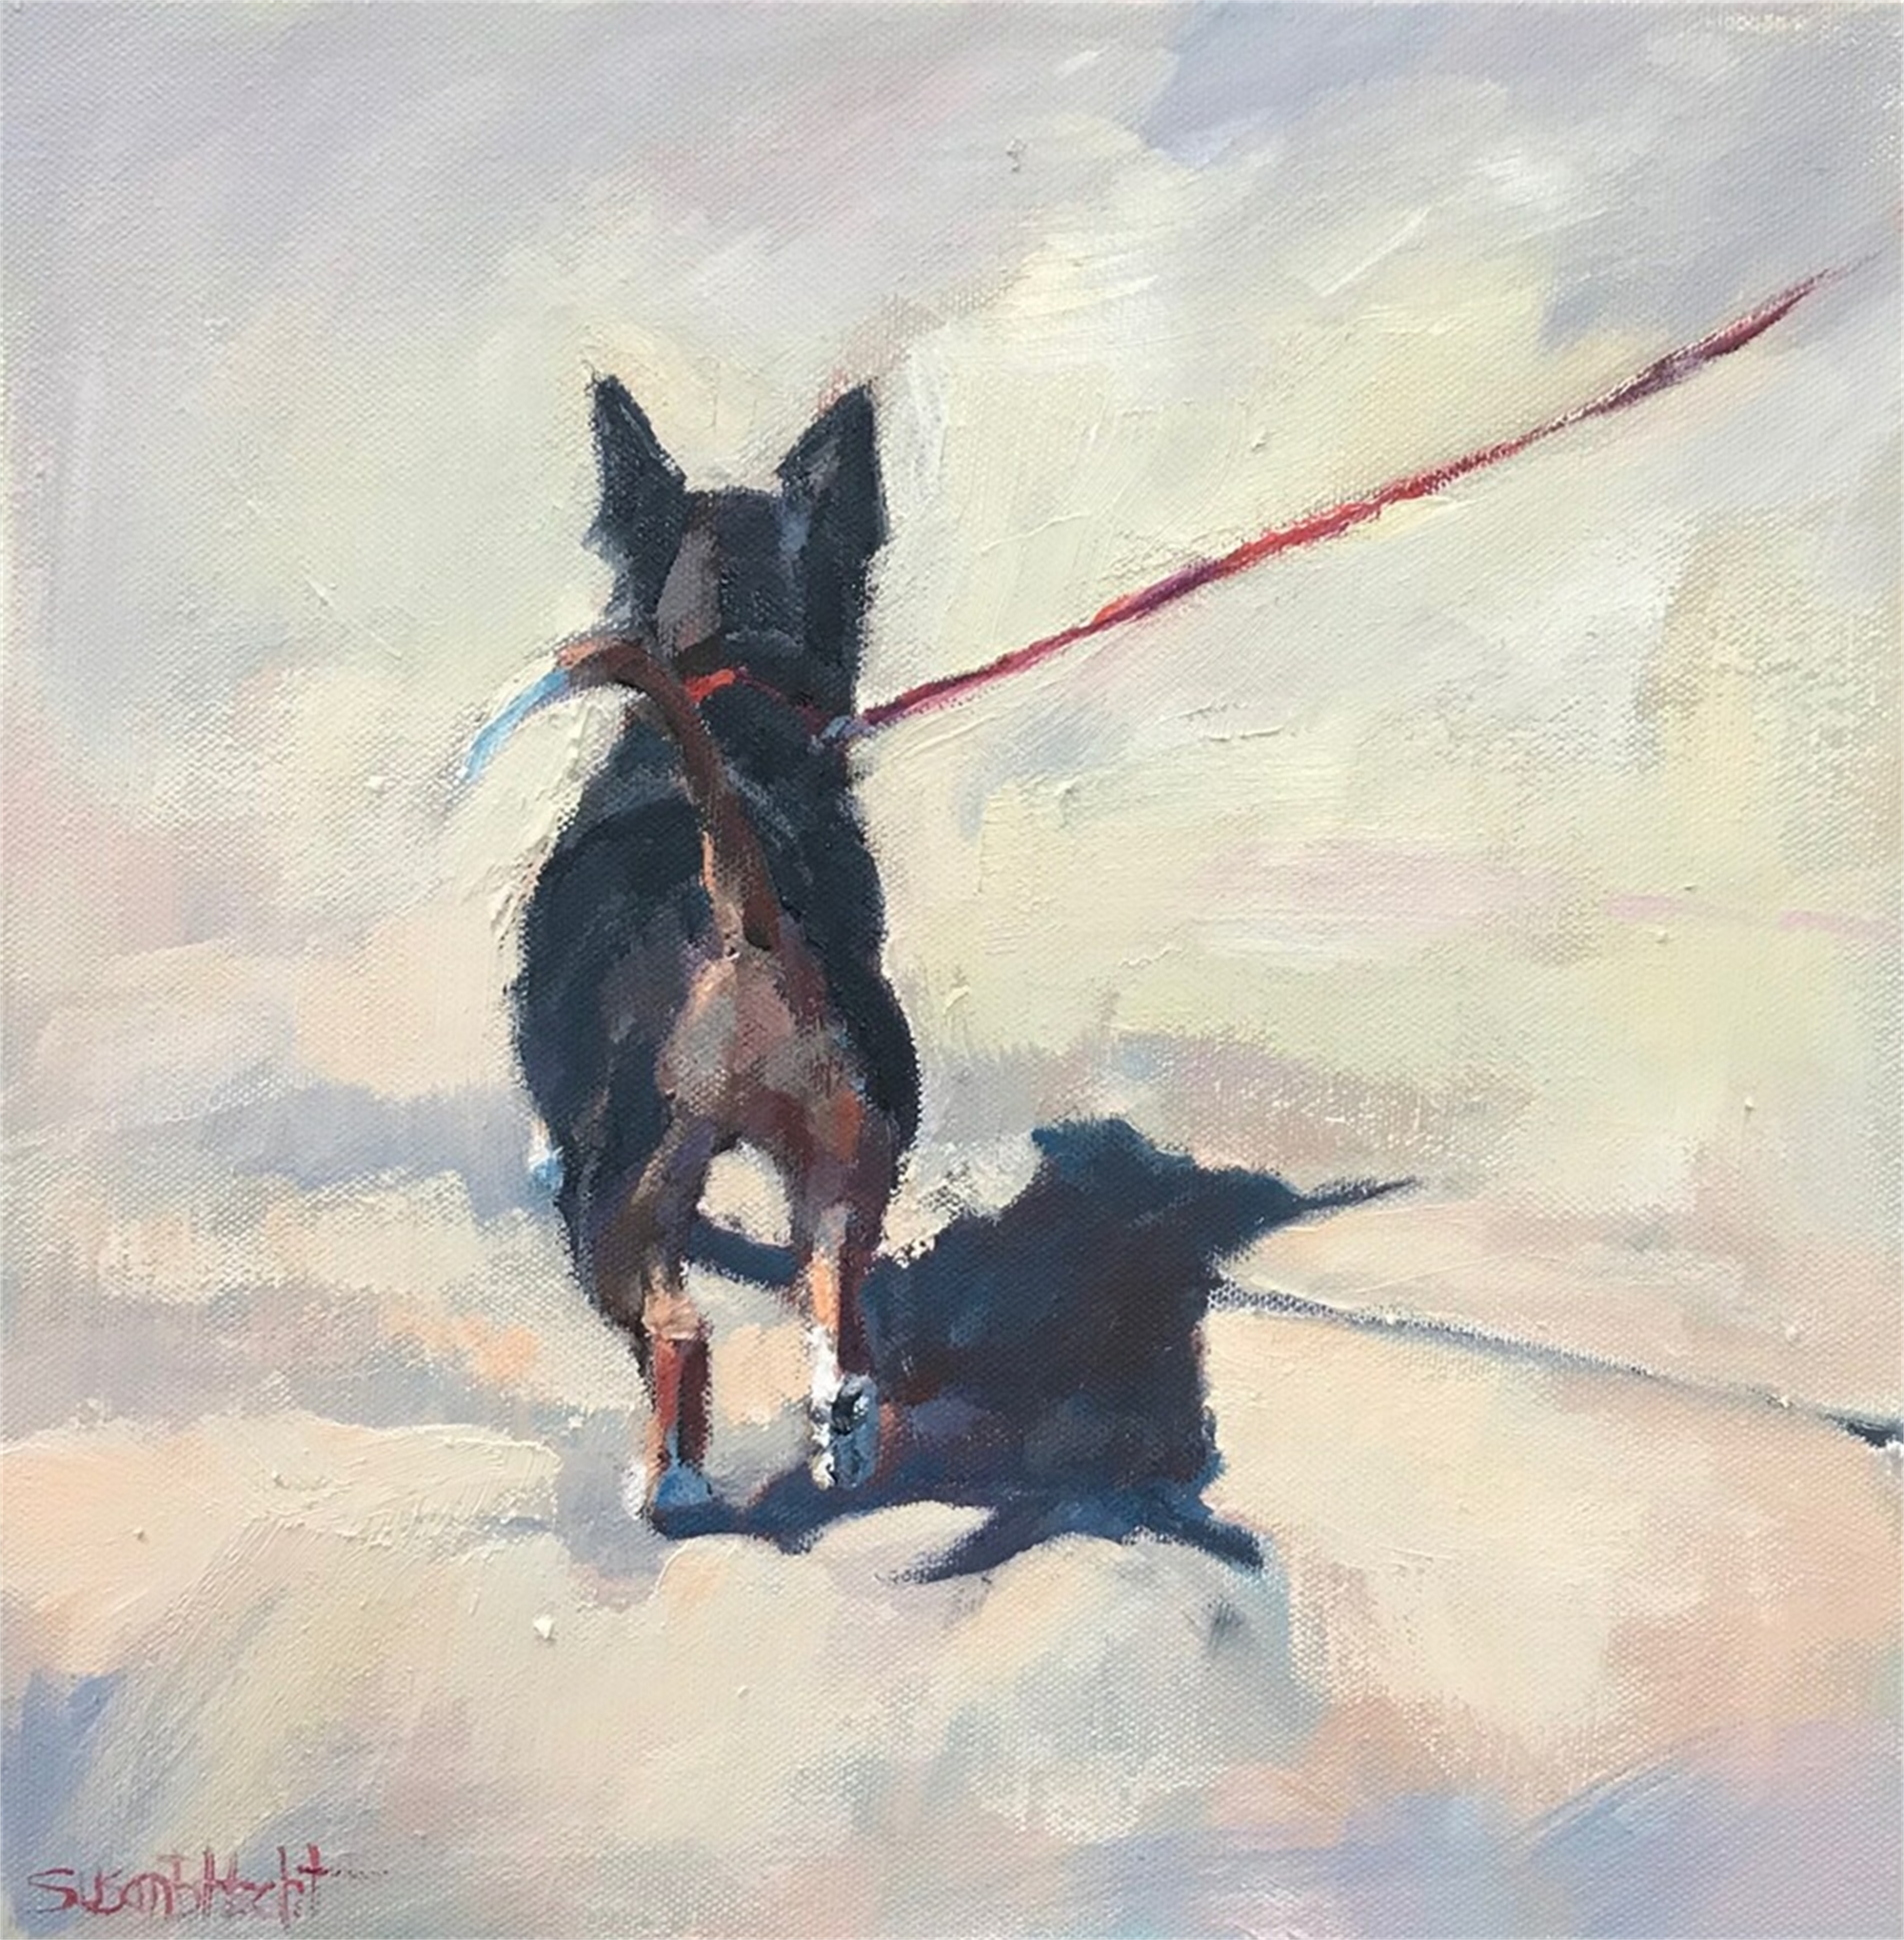 Prancing by Susan Hecht